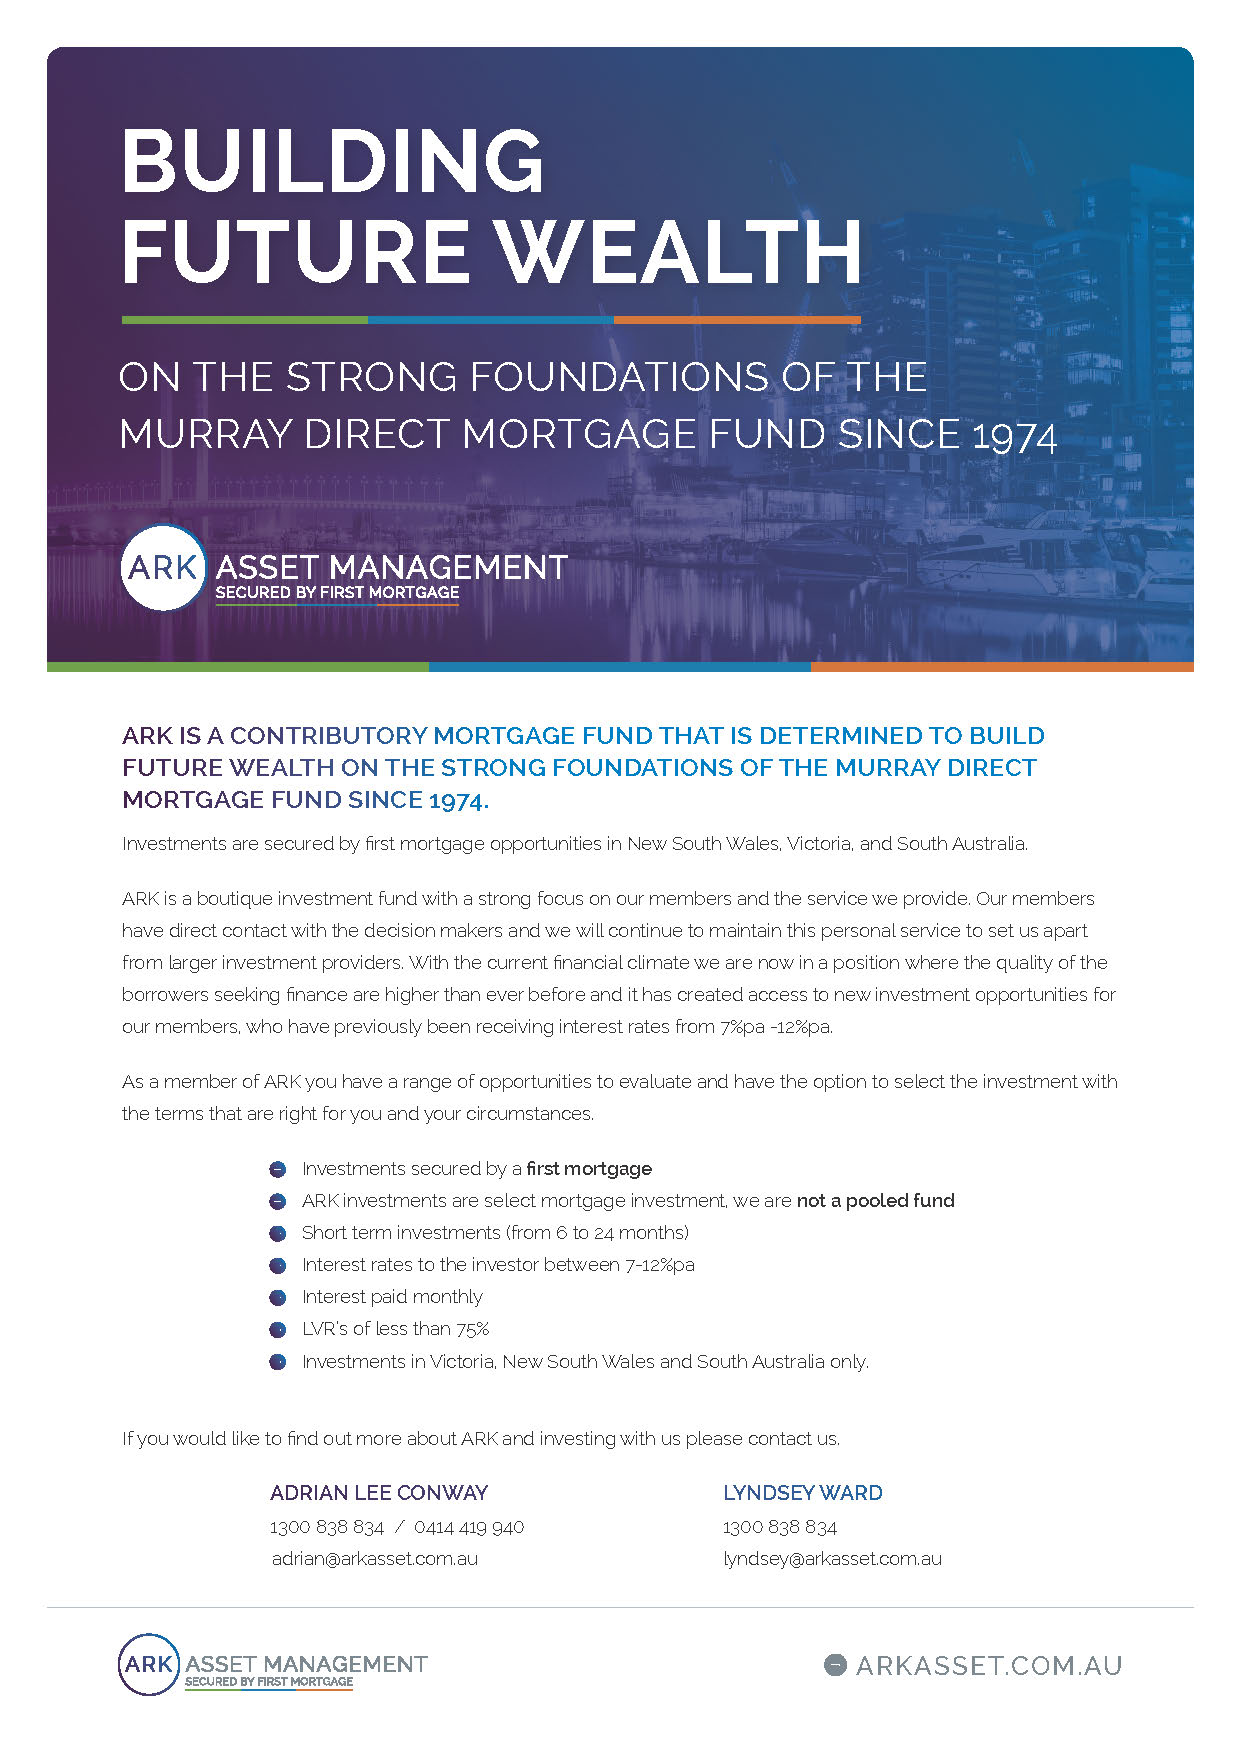 Ark Asset Management - A4 Flyer_Page_1.jpg